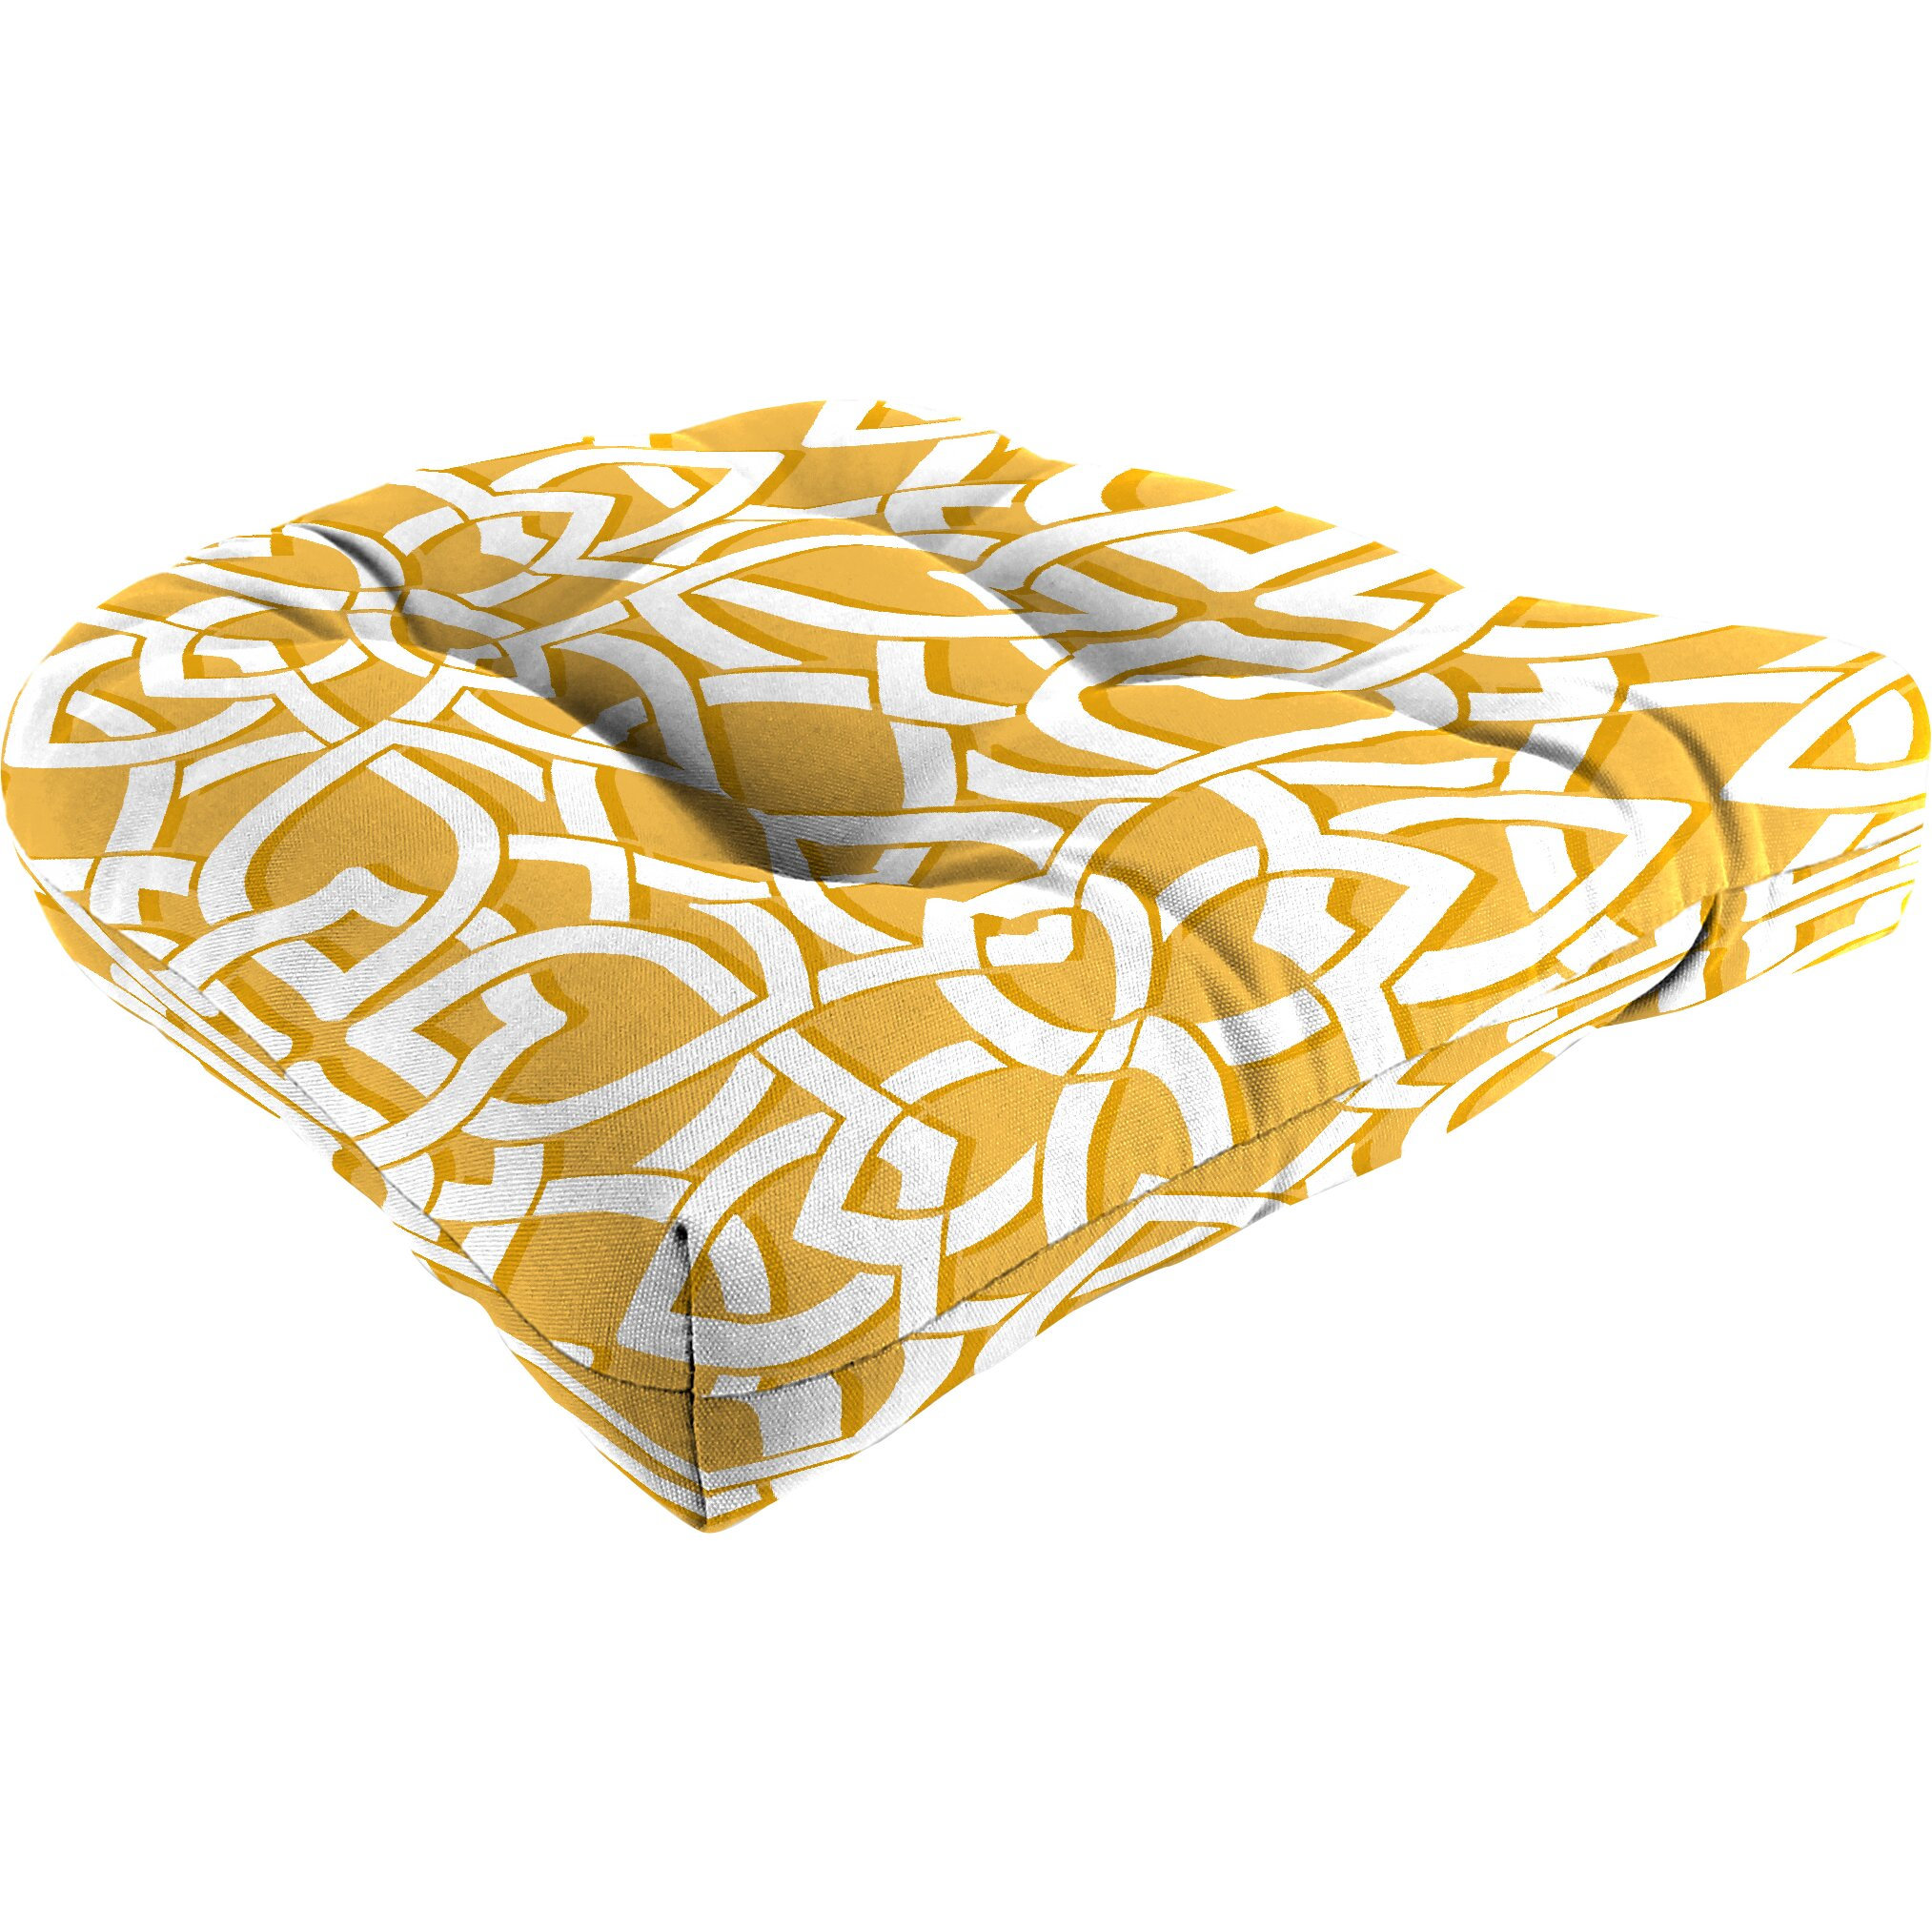 Varick Gallery Outdoor Lounge Chair Cushion & Reviews